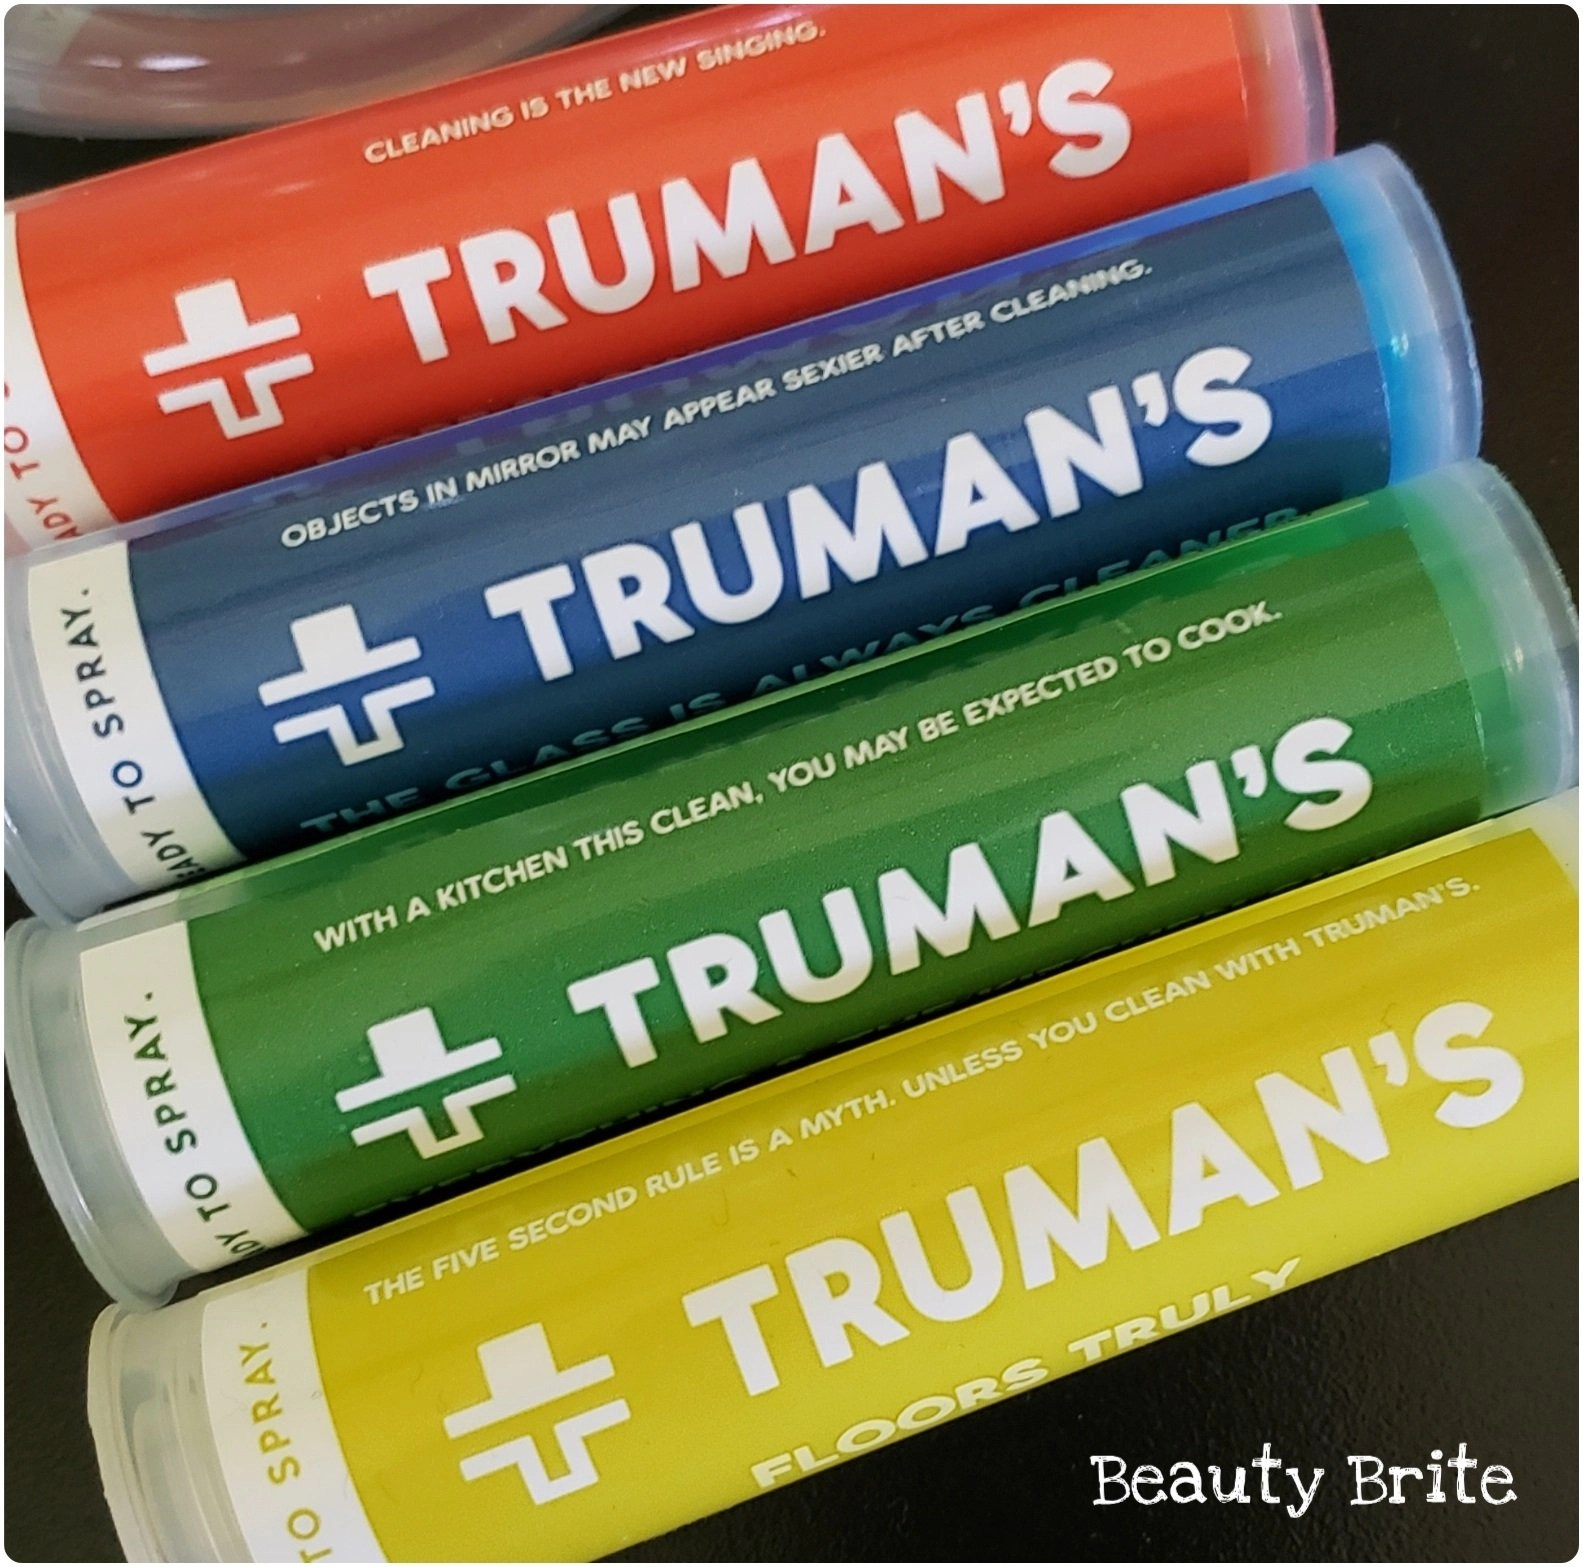 TRuman's Cleaning Cartridges